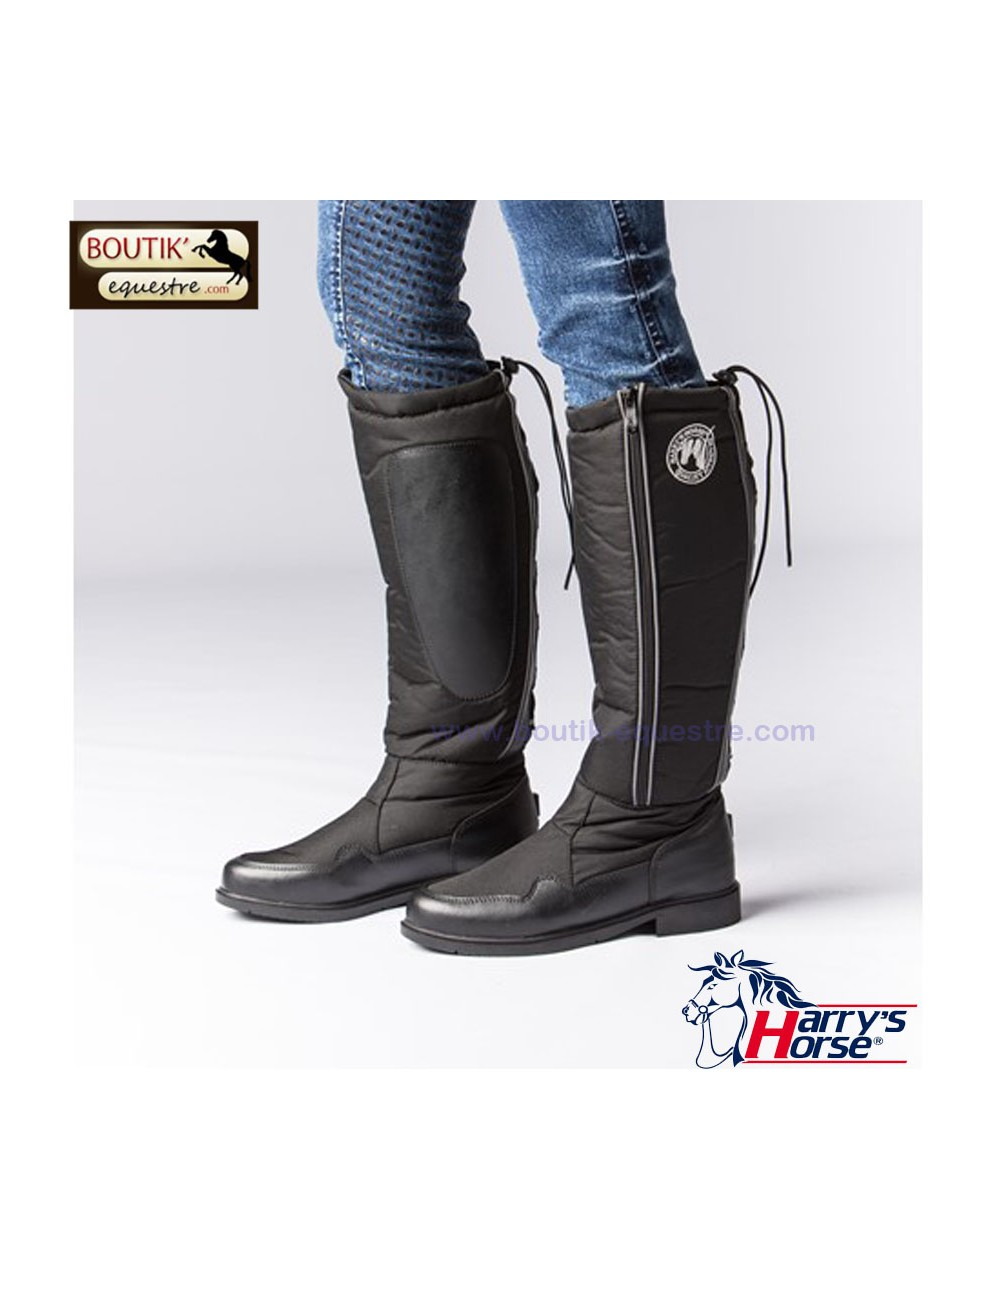 Bottes hiver Harry's horse Montreal